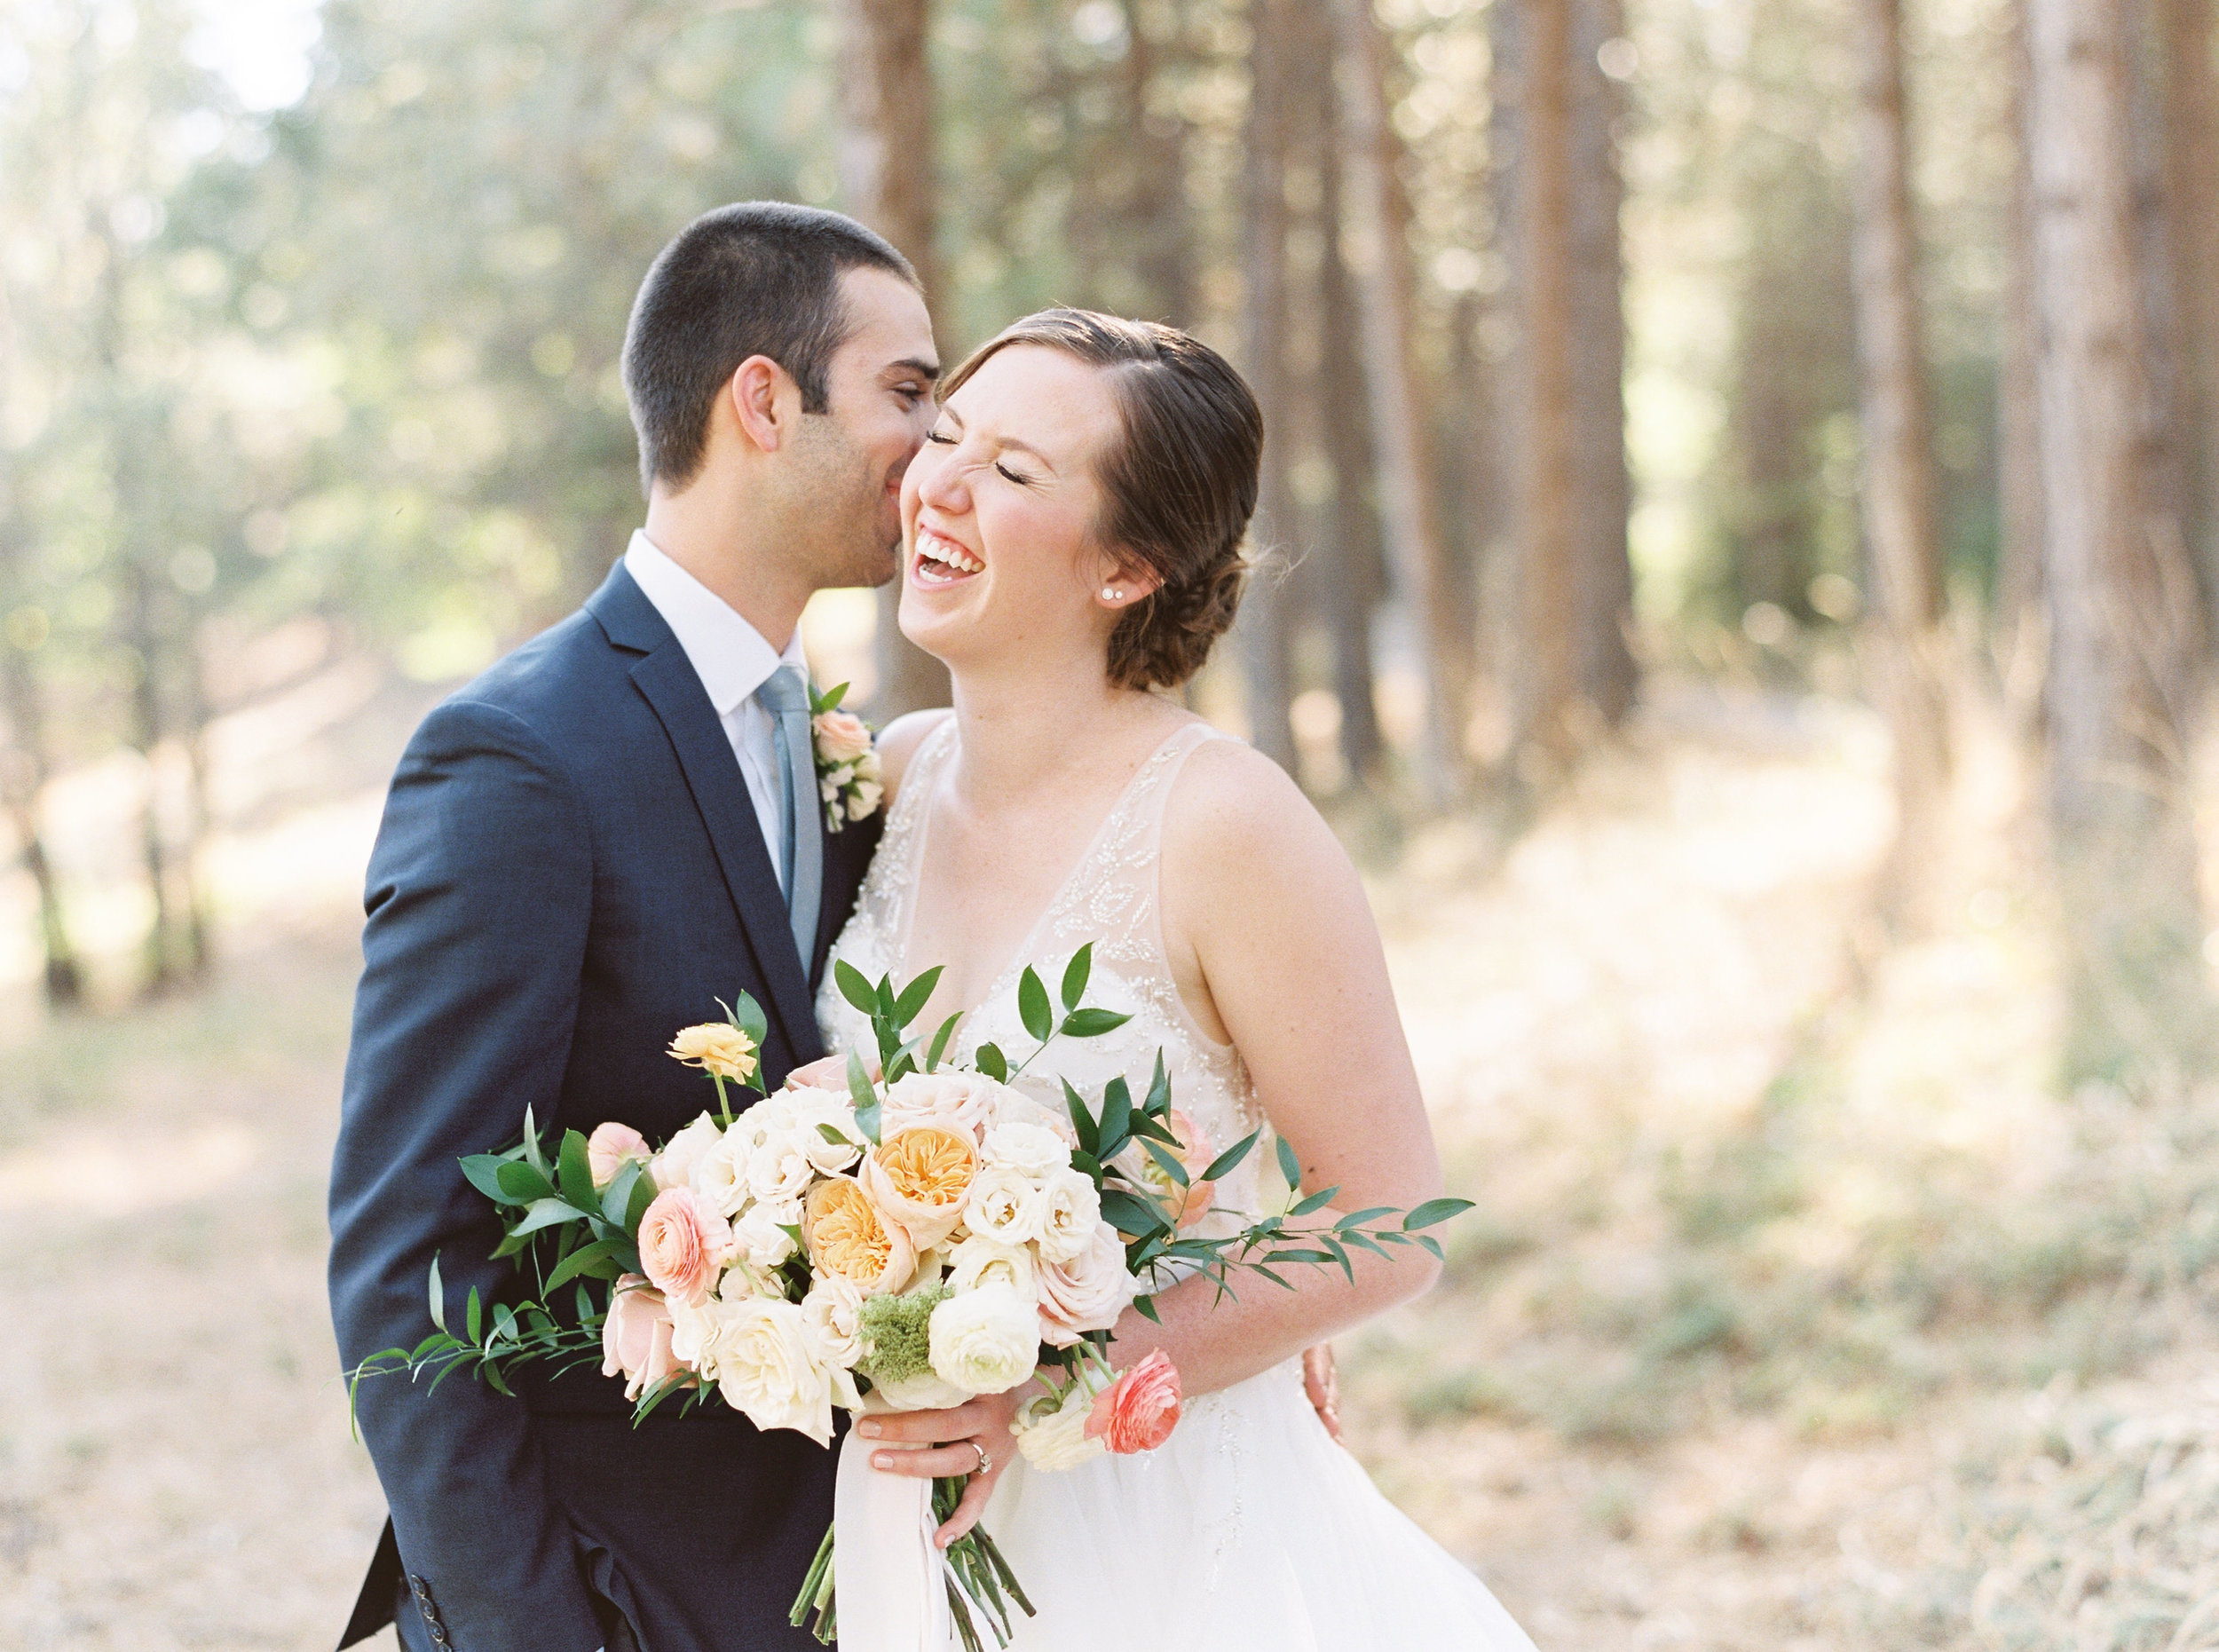 Forest-house-lodge-wedding-foresthill-california-61.jpg